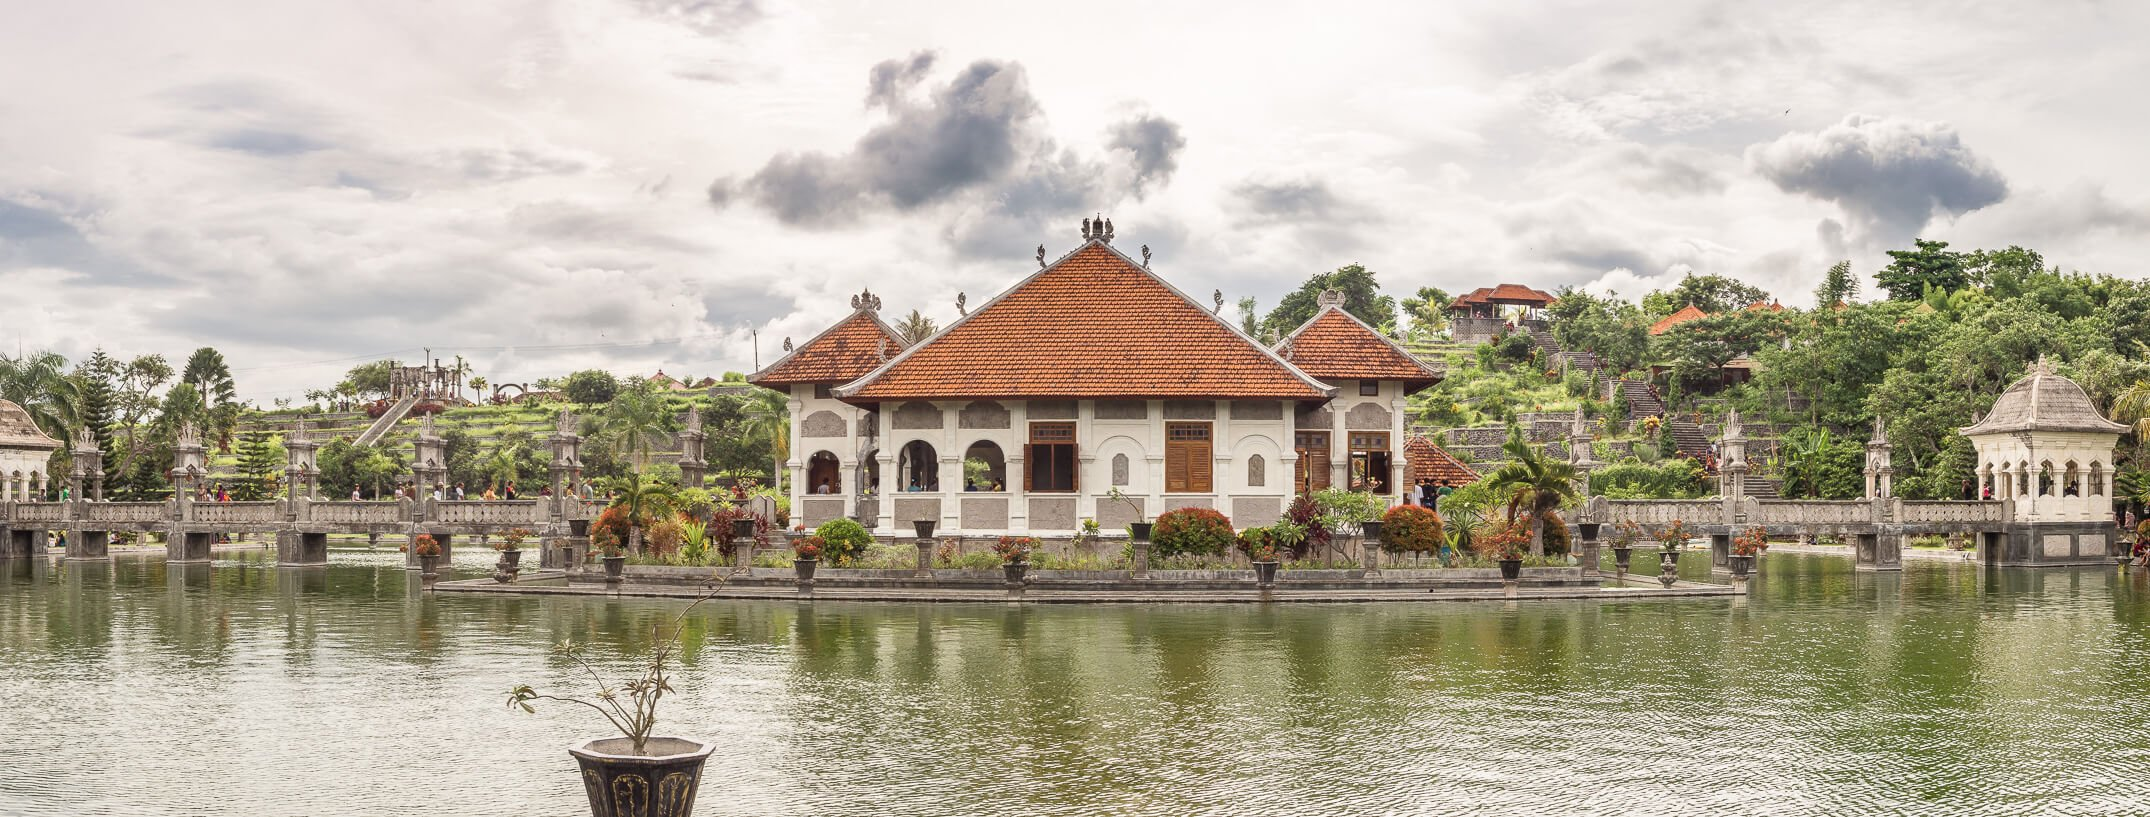 tirta gangga water palace in amed, bali